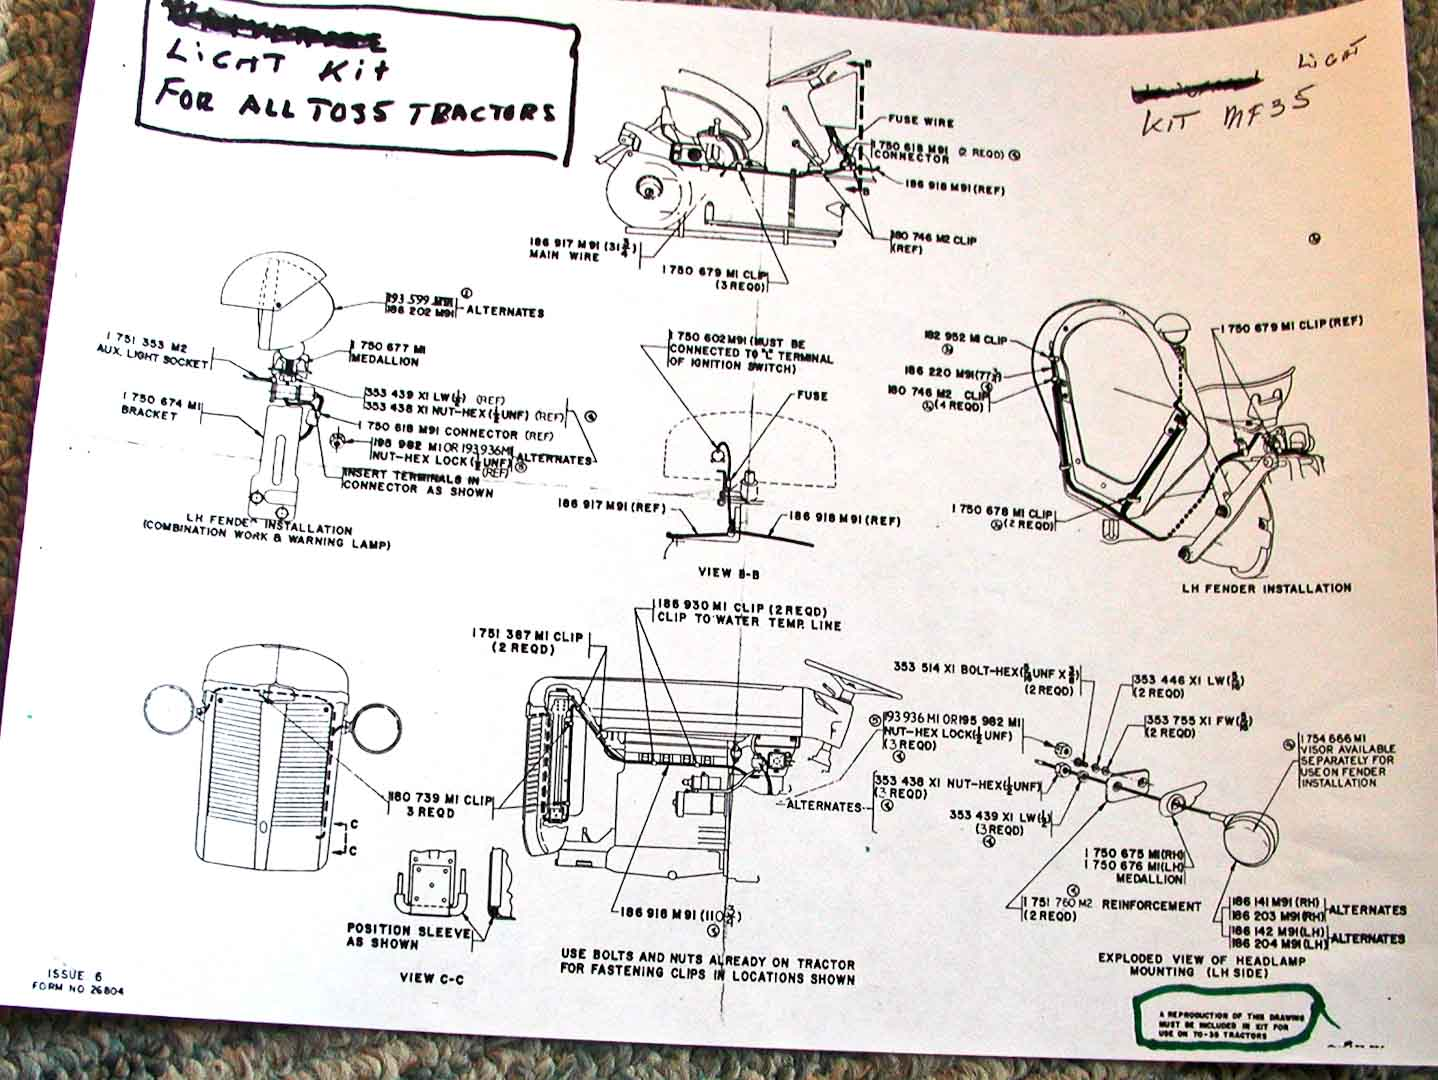 electrical and lighting diagrams ferguson enthusiasts of north america rh fergusontractors org Massey Ferguson 65 Electrical Diagram Massey Ferguson 35 Tractor Hydraulic Lift Diagrams